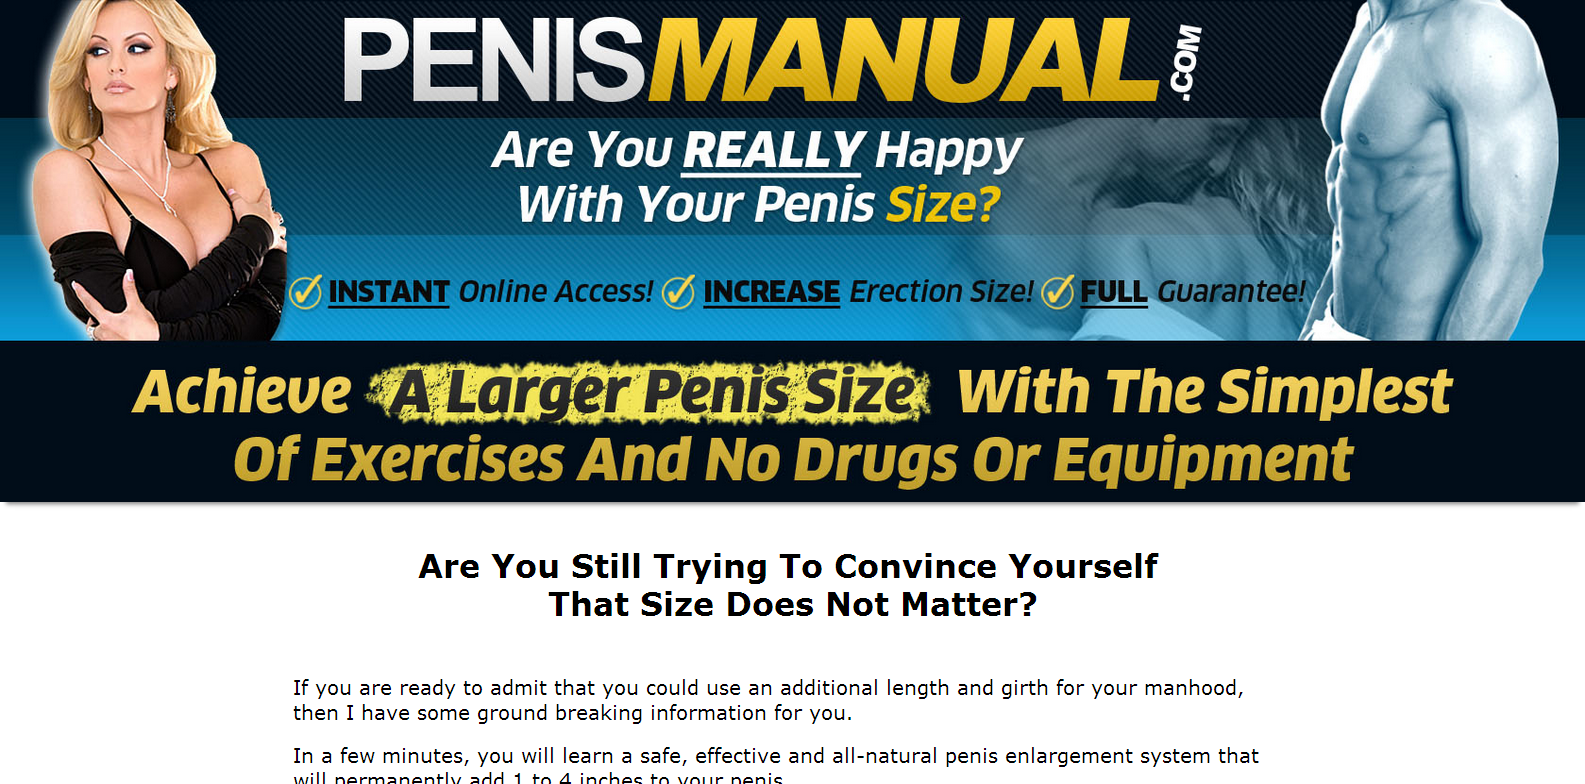 Penis-Manual-Exercise-Program-Penis-Enlargement-Guide -3219